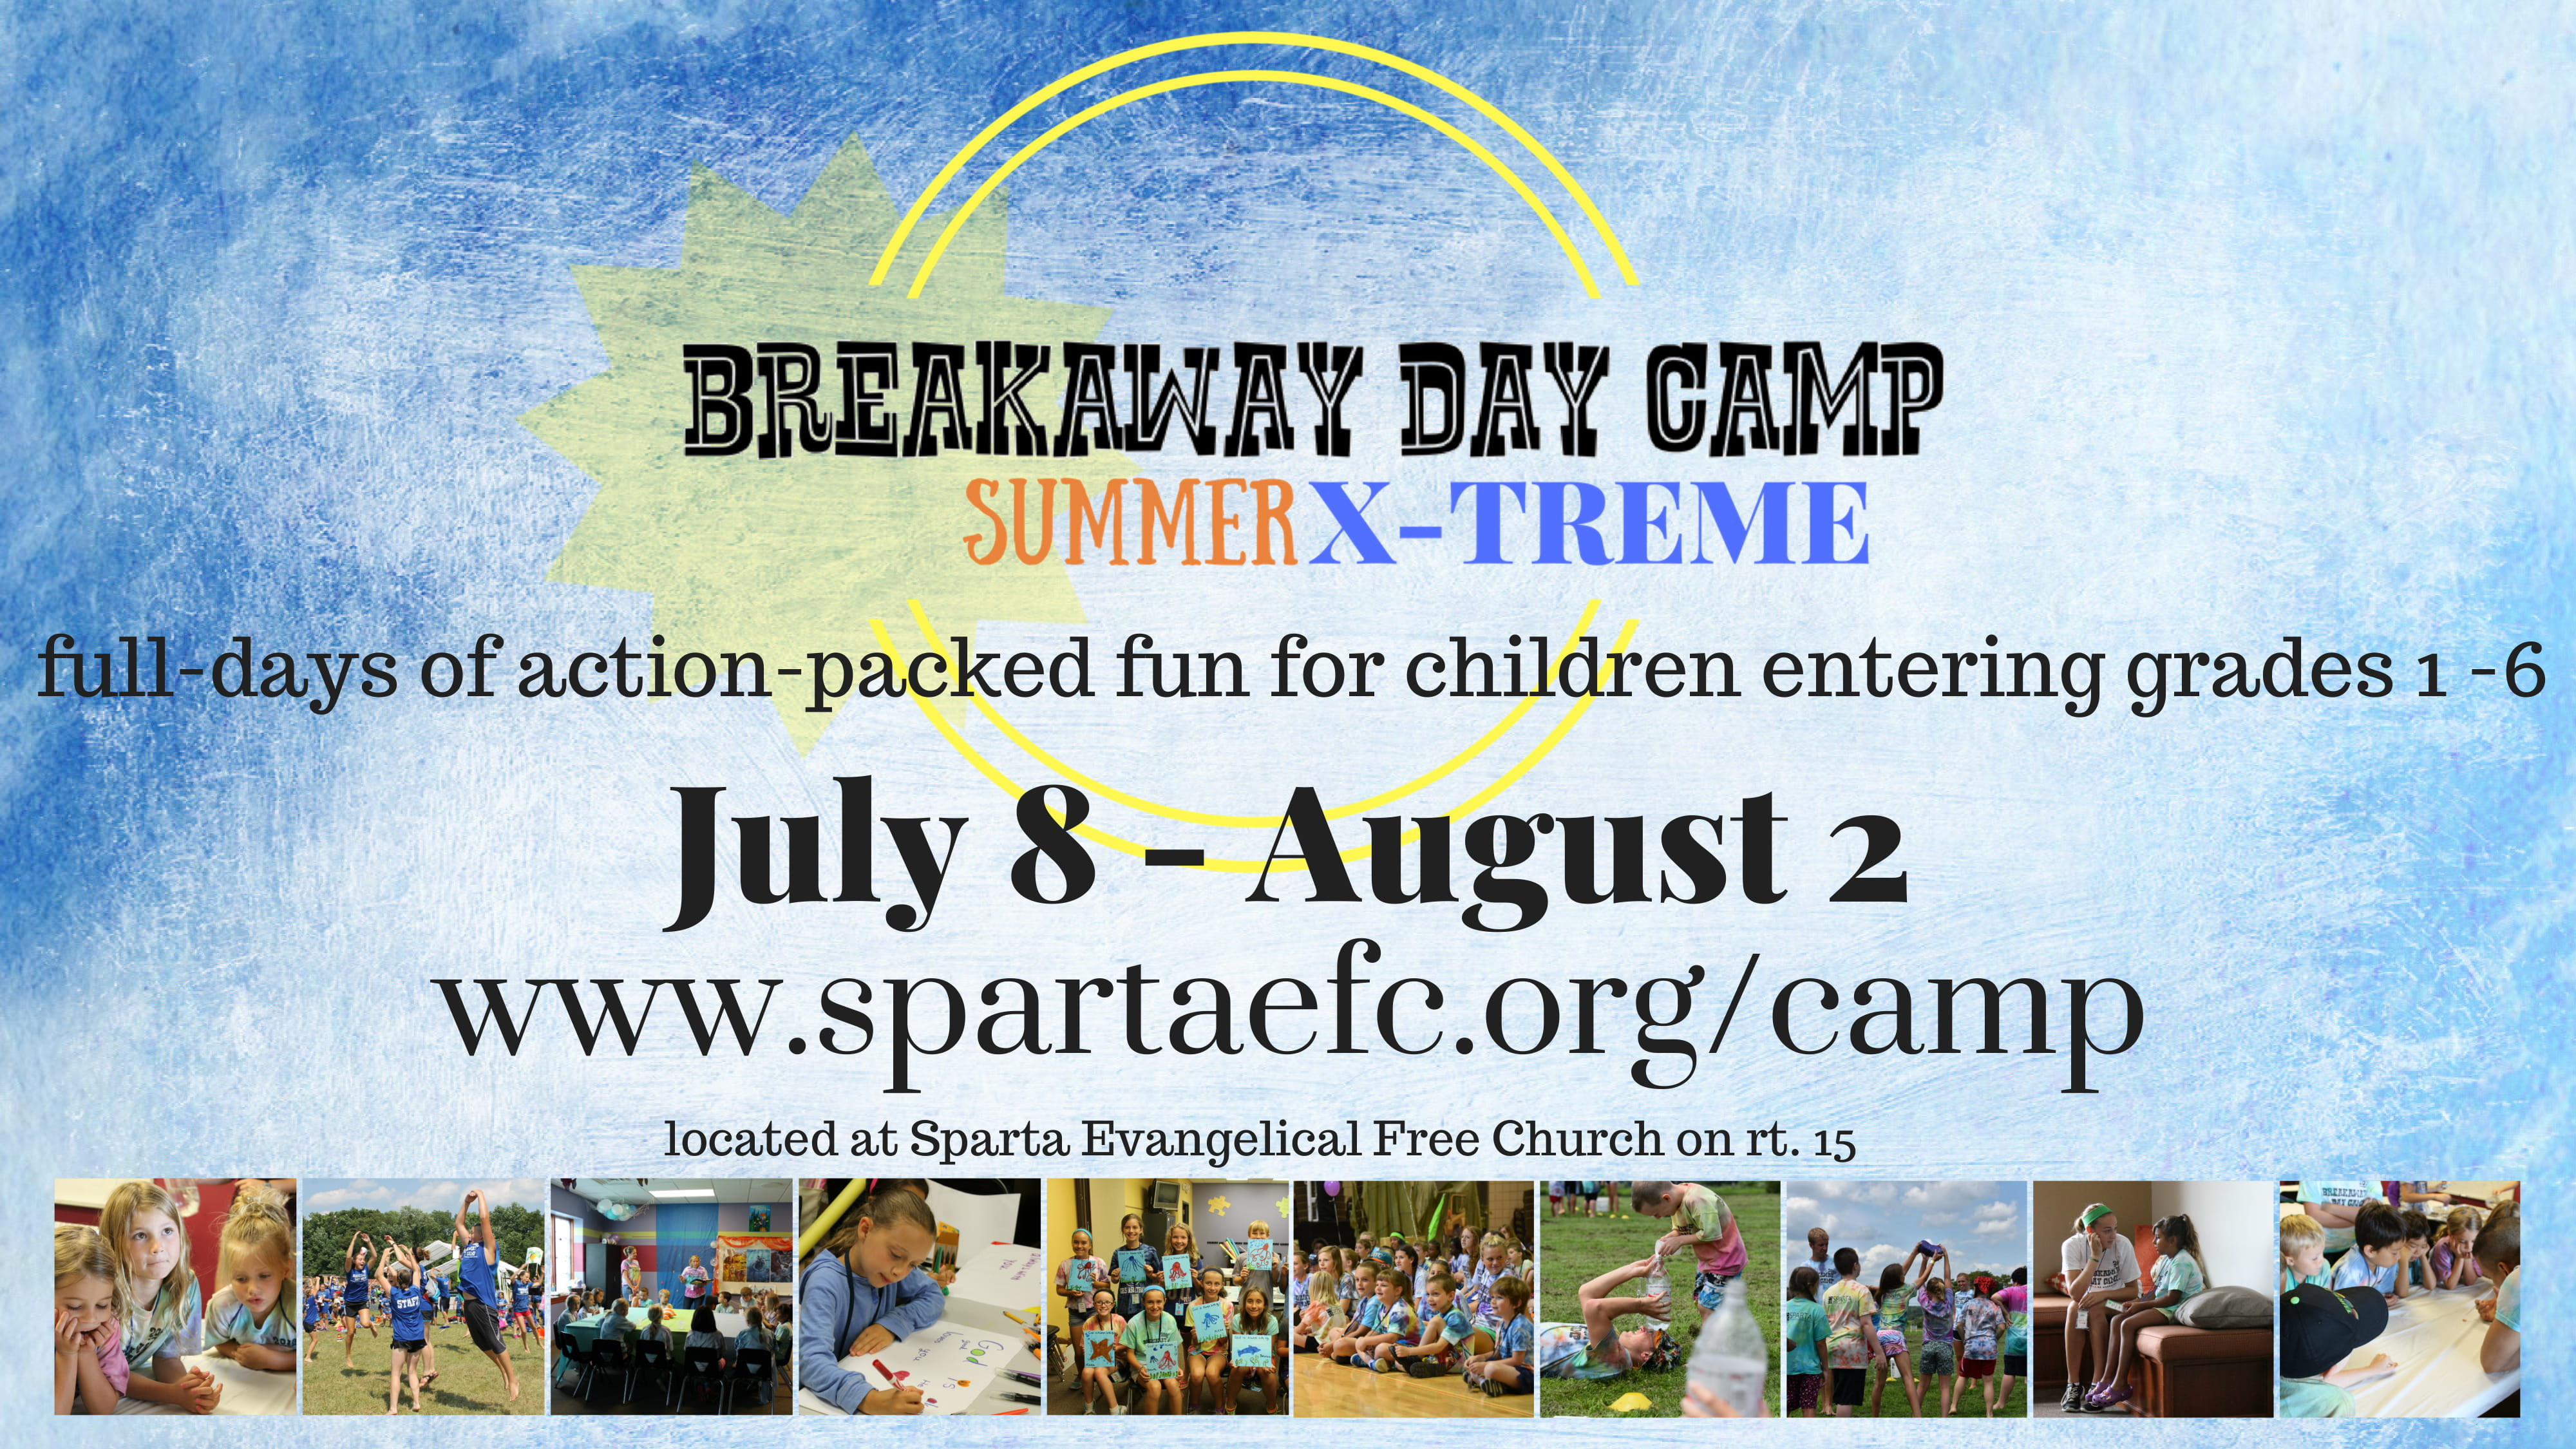 2019 Summer Camp Guide For Sussex County